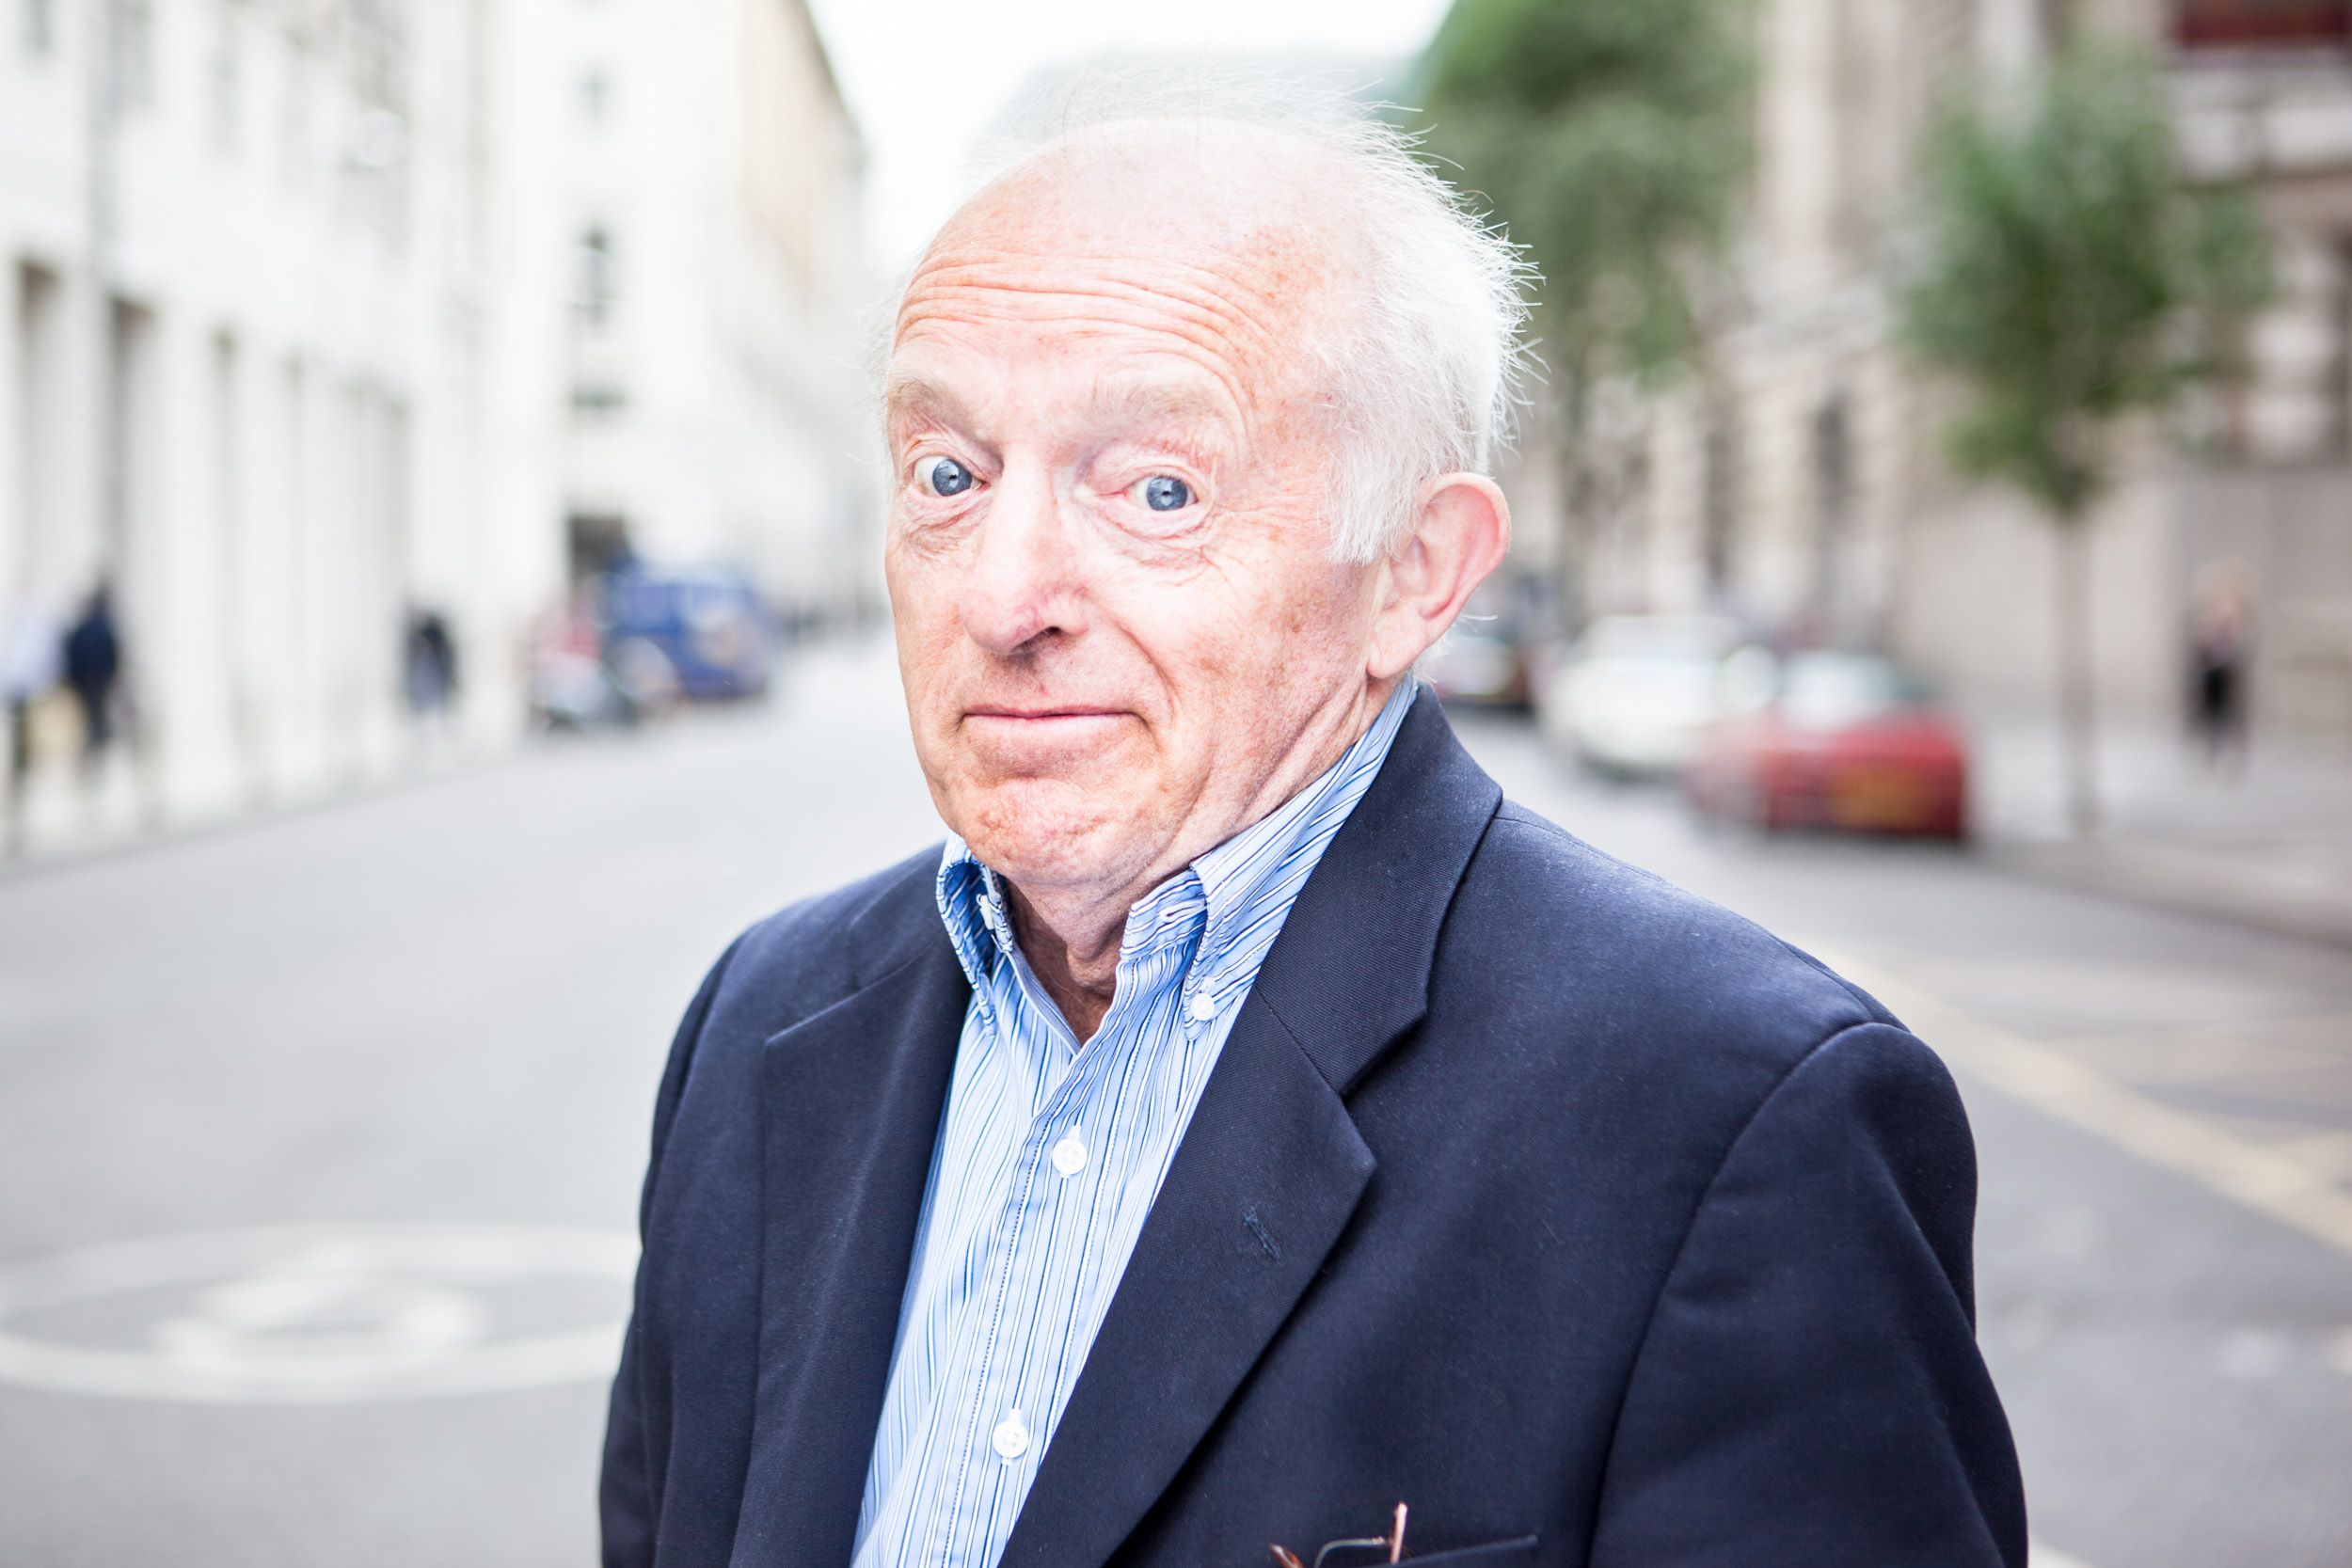 Paul Daniels portrait by James Whitaker